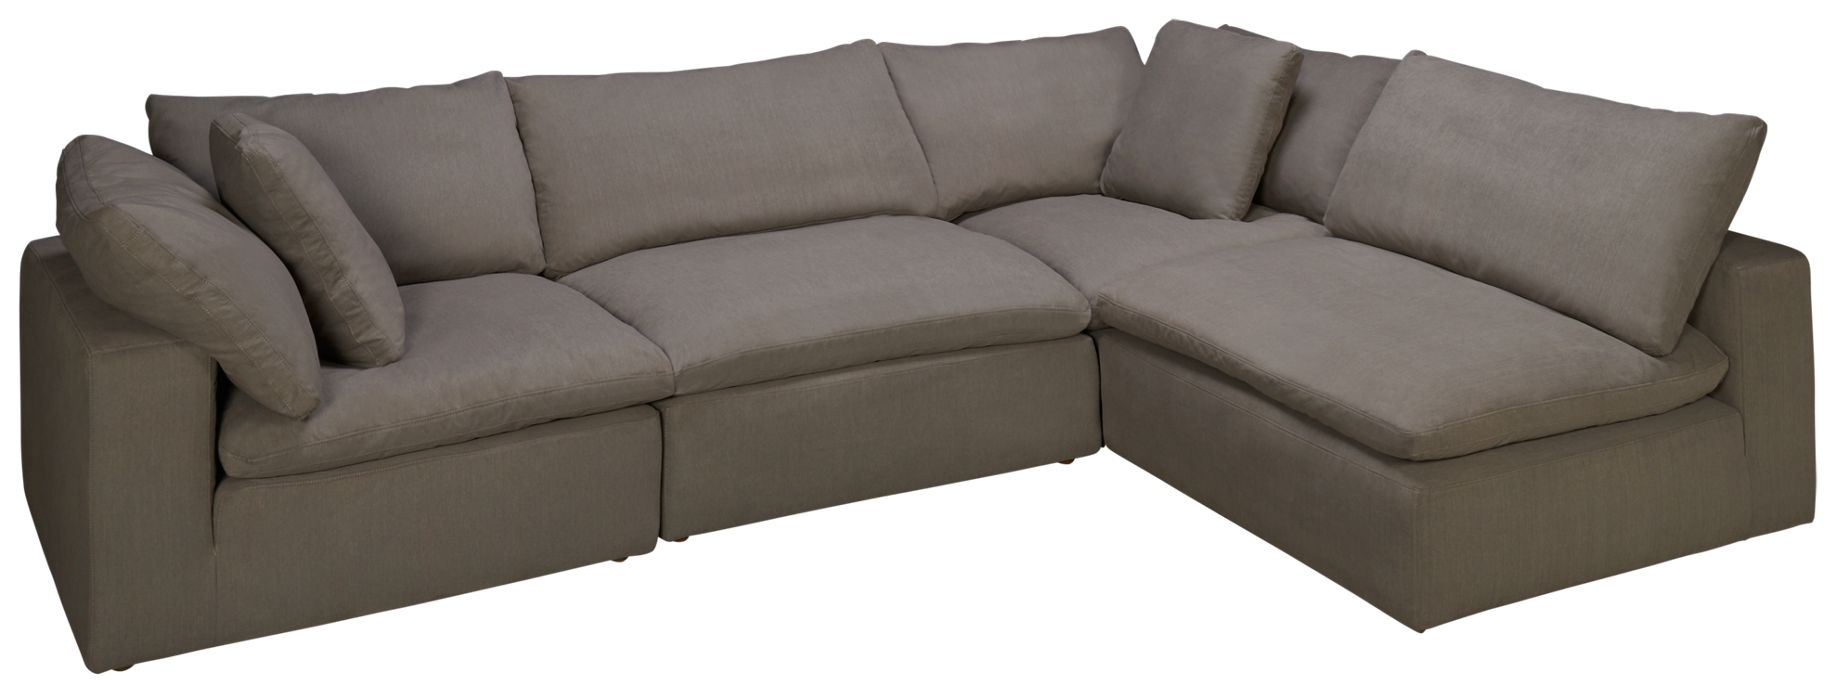 Synergy Peyton Synergy Peyton 4 Piece Sectional Jordan s Furniture